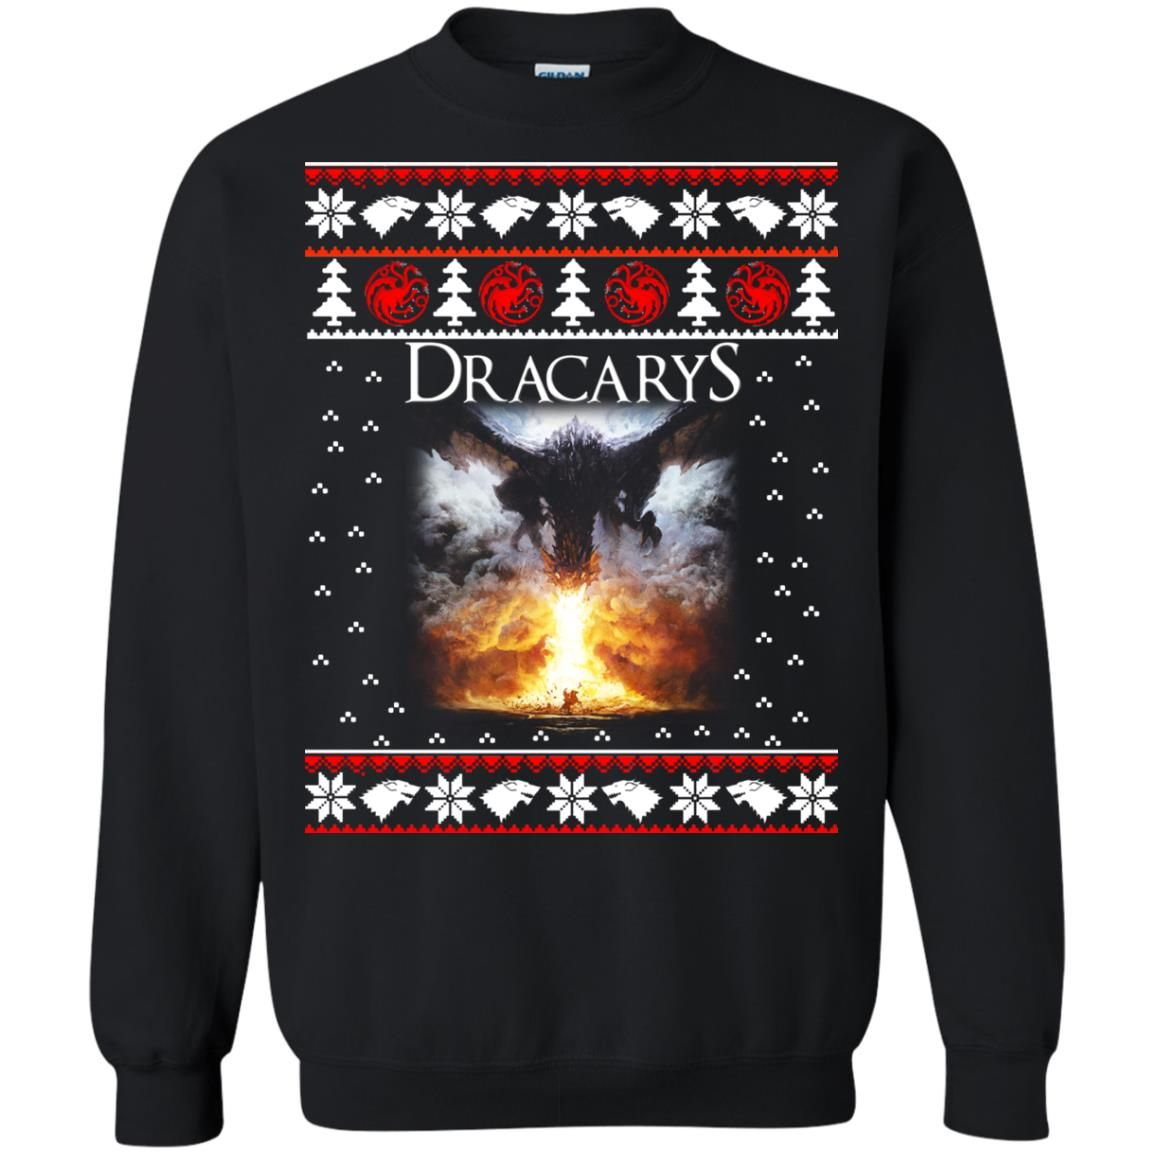 image 820 - Game of Thrones: Dracarys ugly Christmas sweater, hoodie, long sleeve